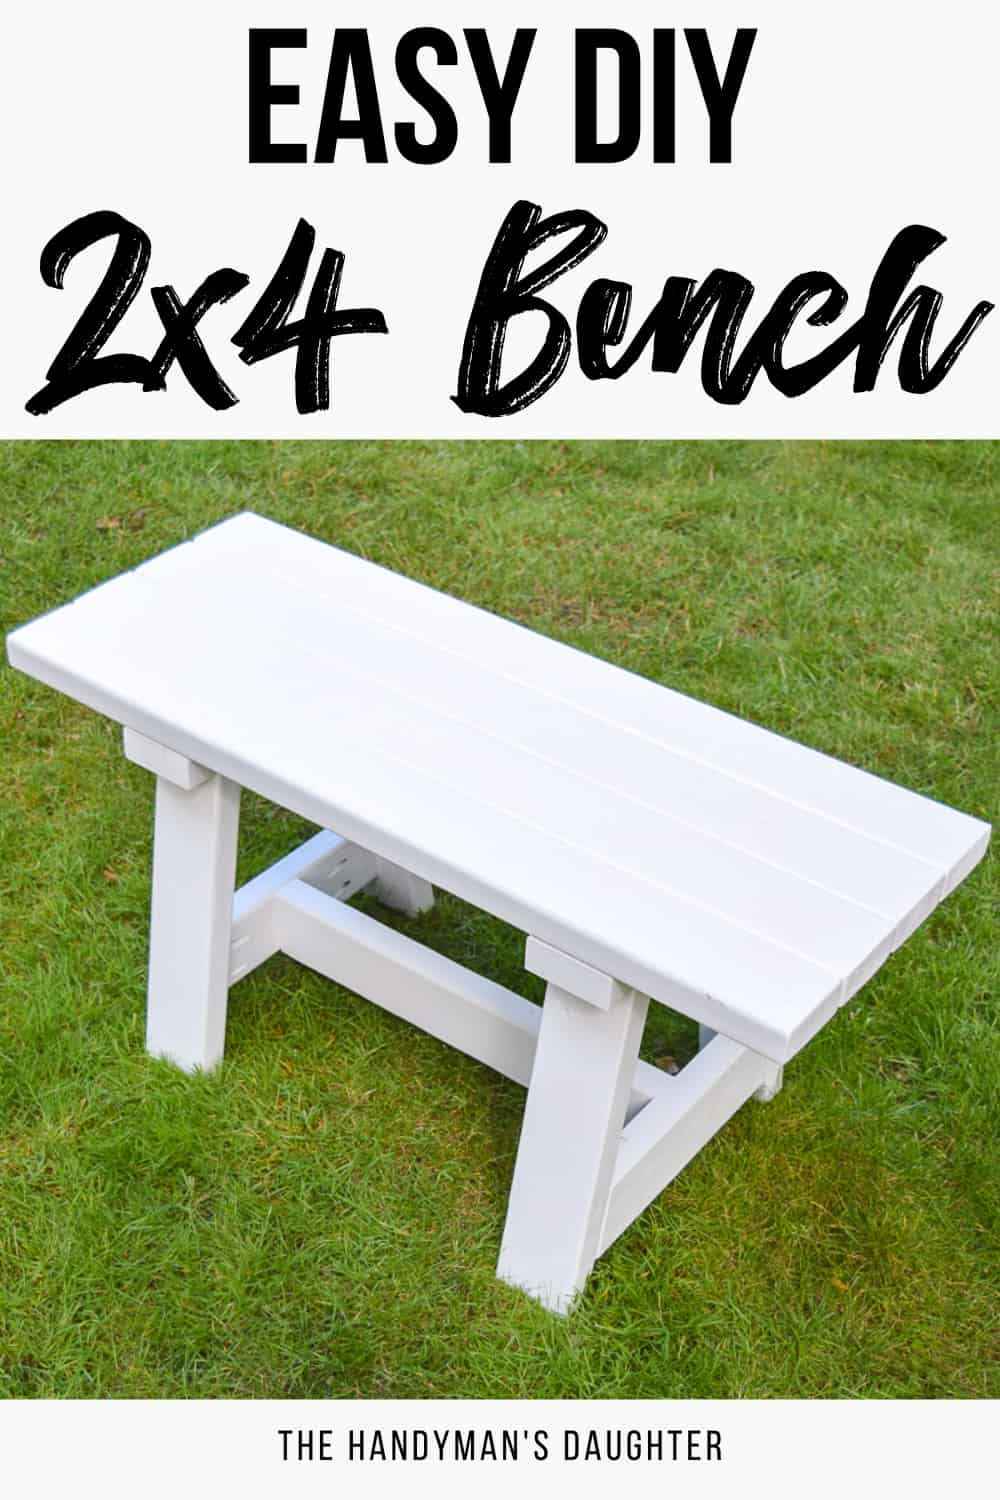 easy DIY 2x4 bench with free plans